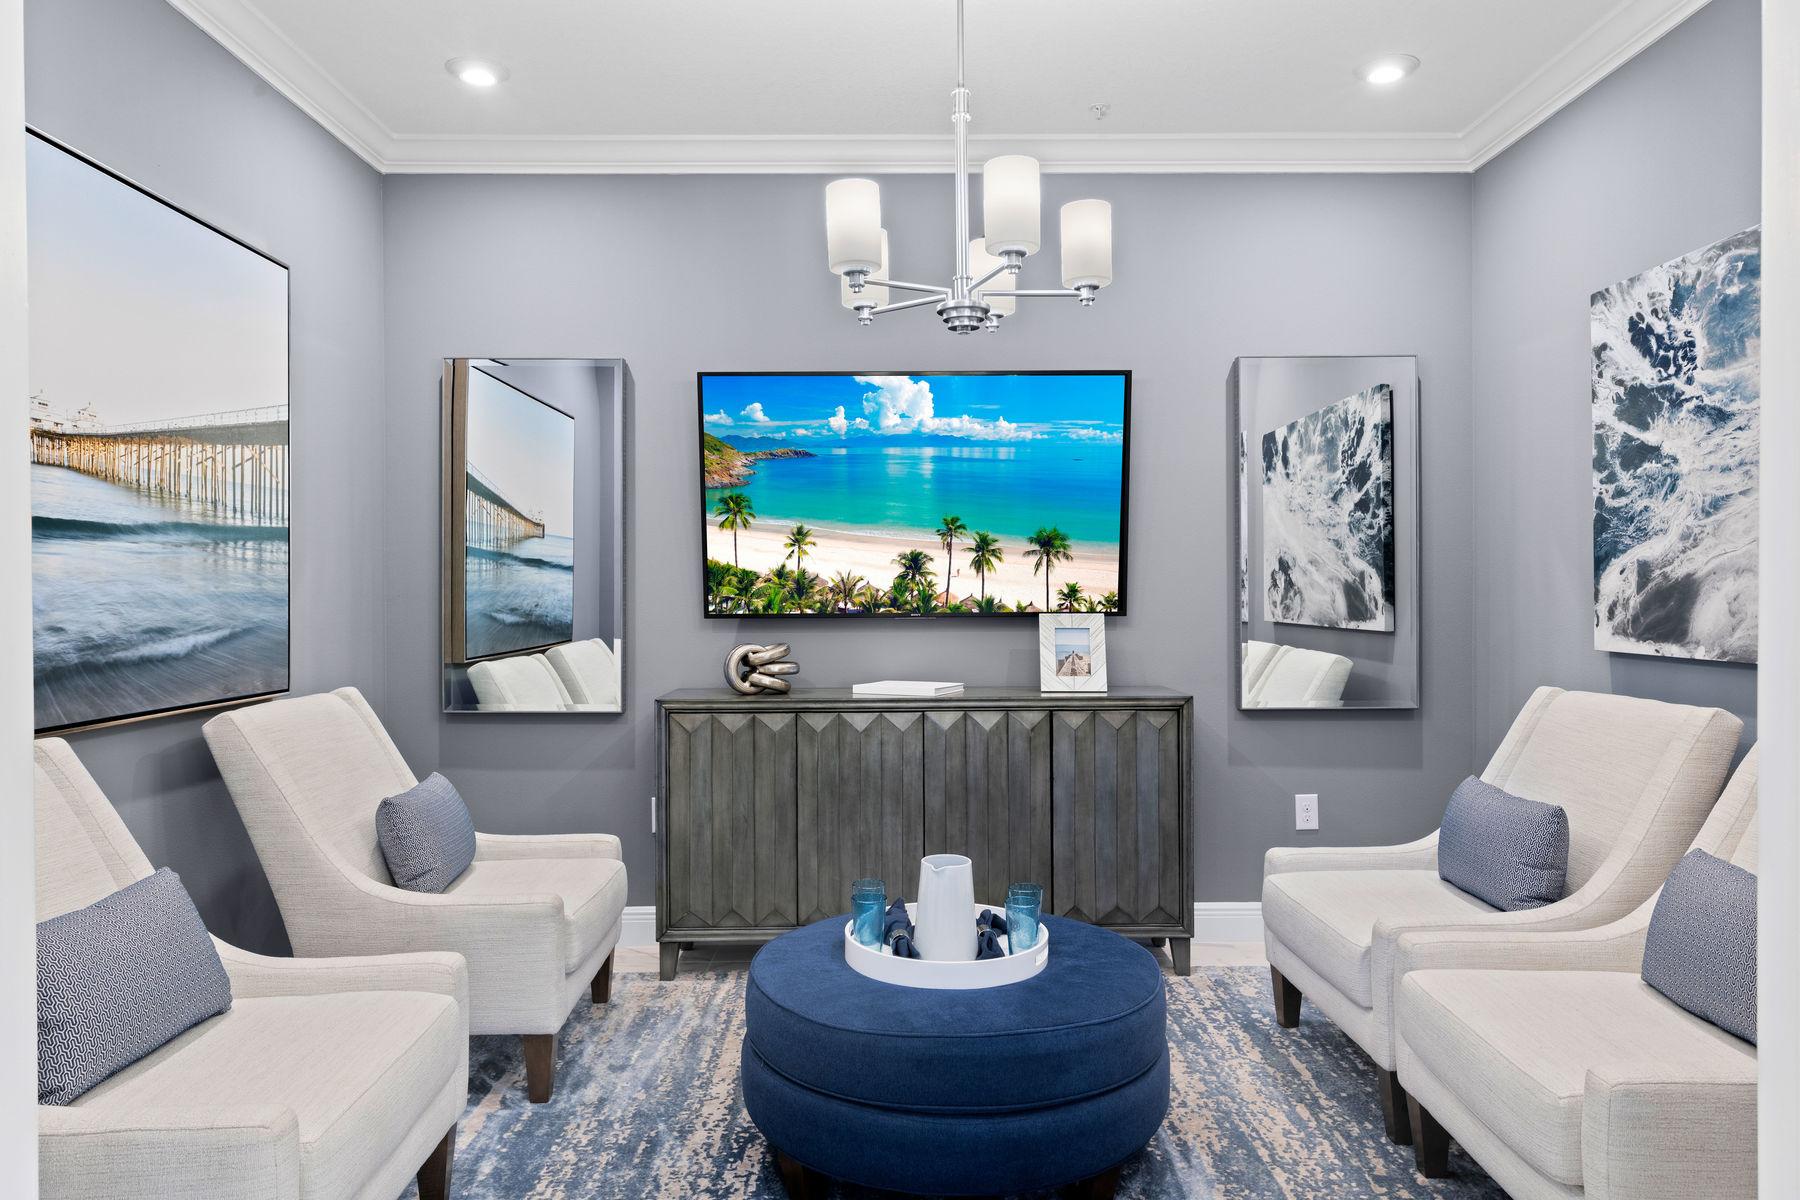 Captiva II Plan Study Room at Arboretum in Naples Florida by Mattamy Homes